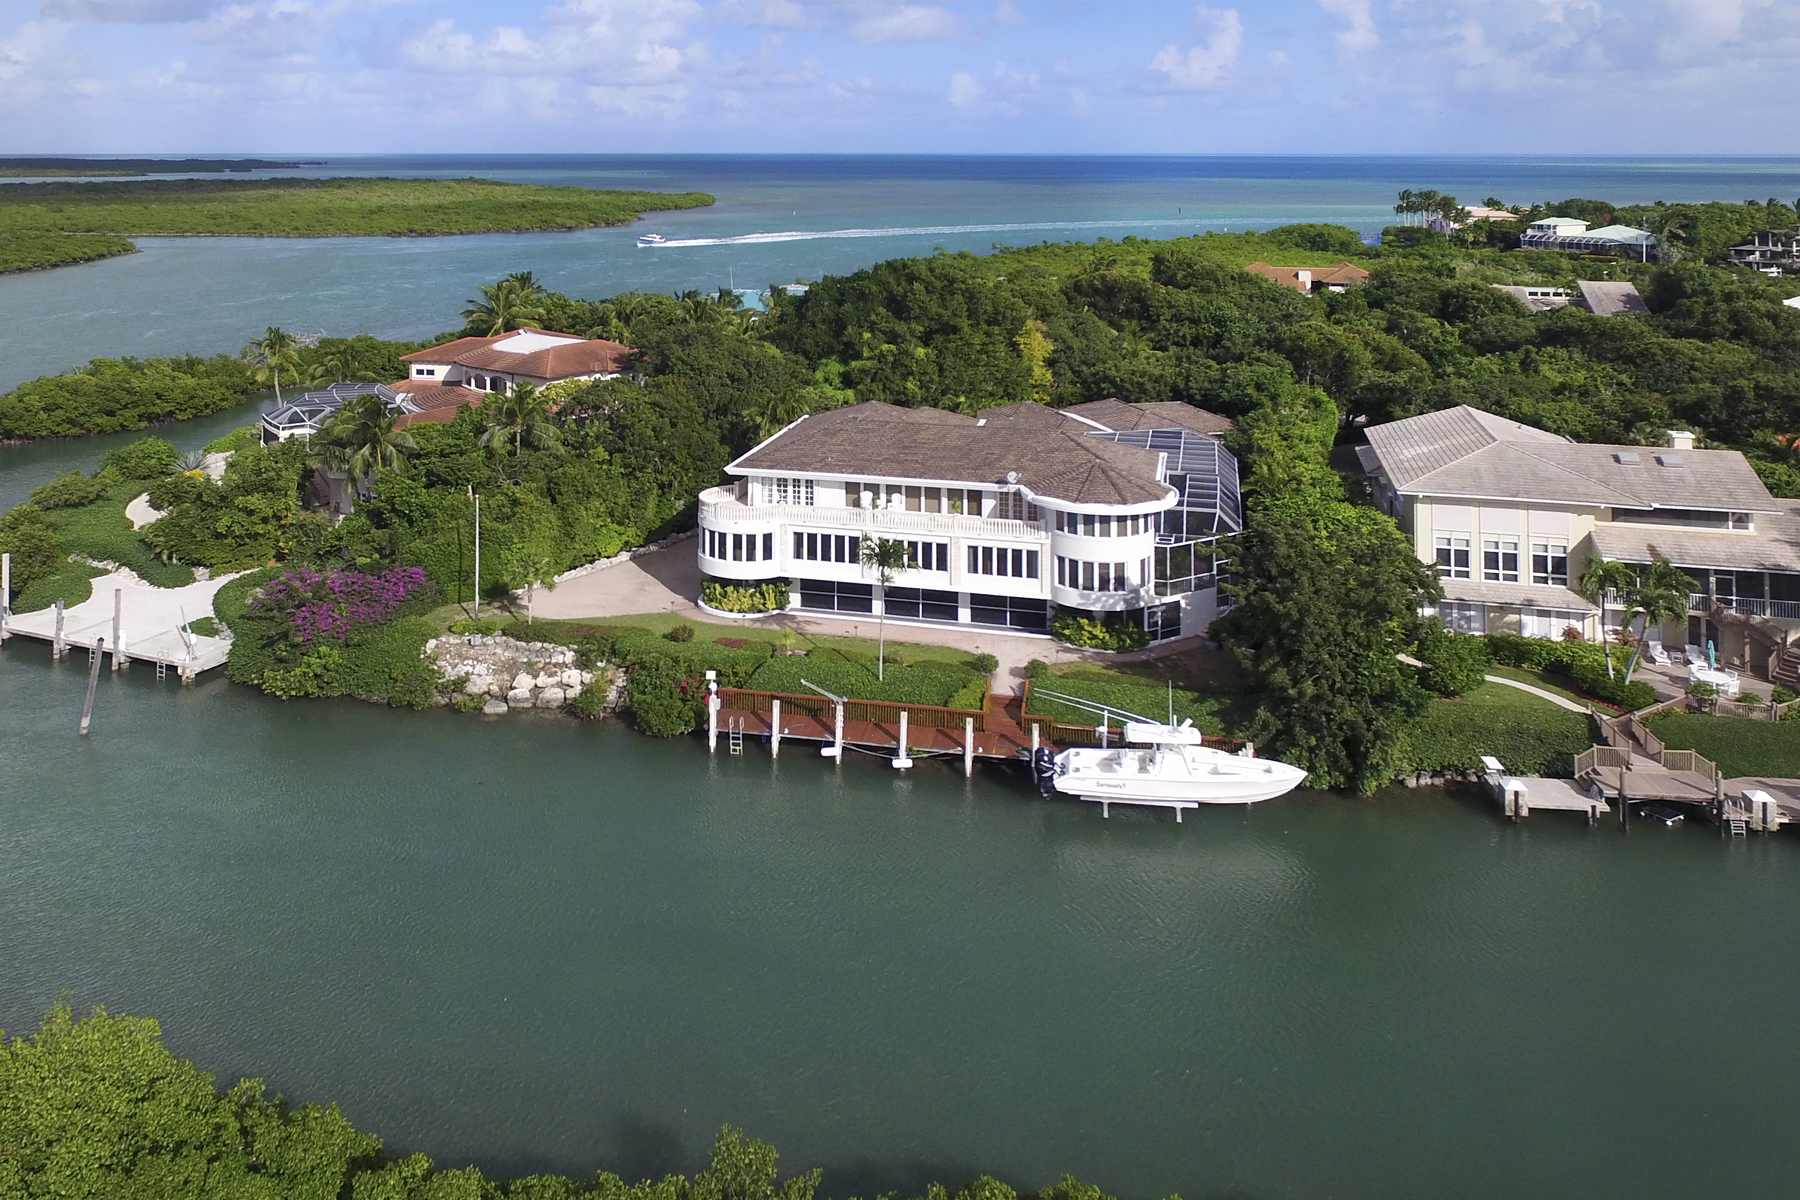 Single Family Home for Sale at Exceptional Family Compound at Ocean Reef 34 Cardinal Lane Ocean Reef Community, Key Largo, Florida, 33037 United States